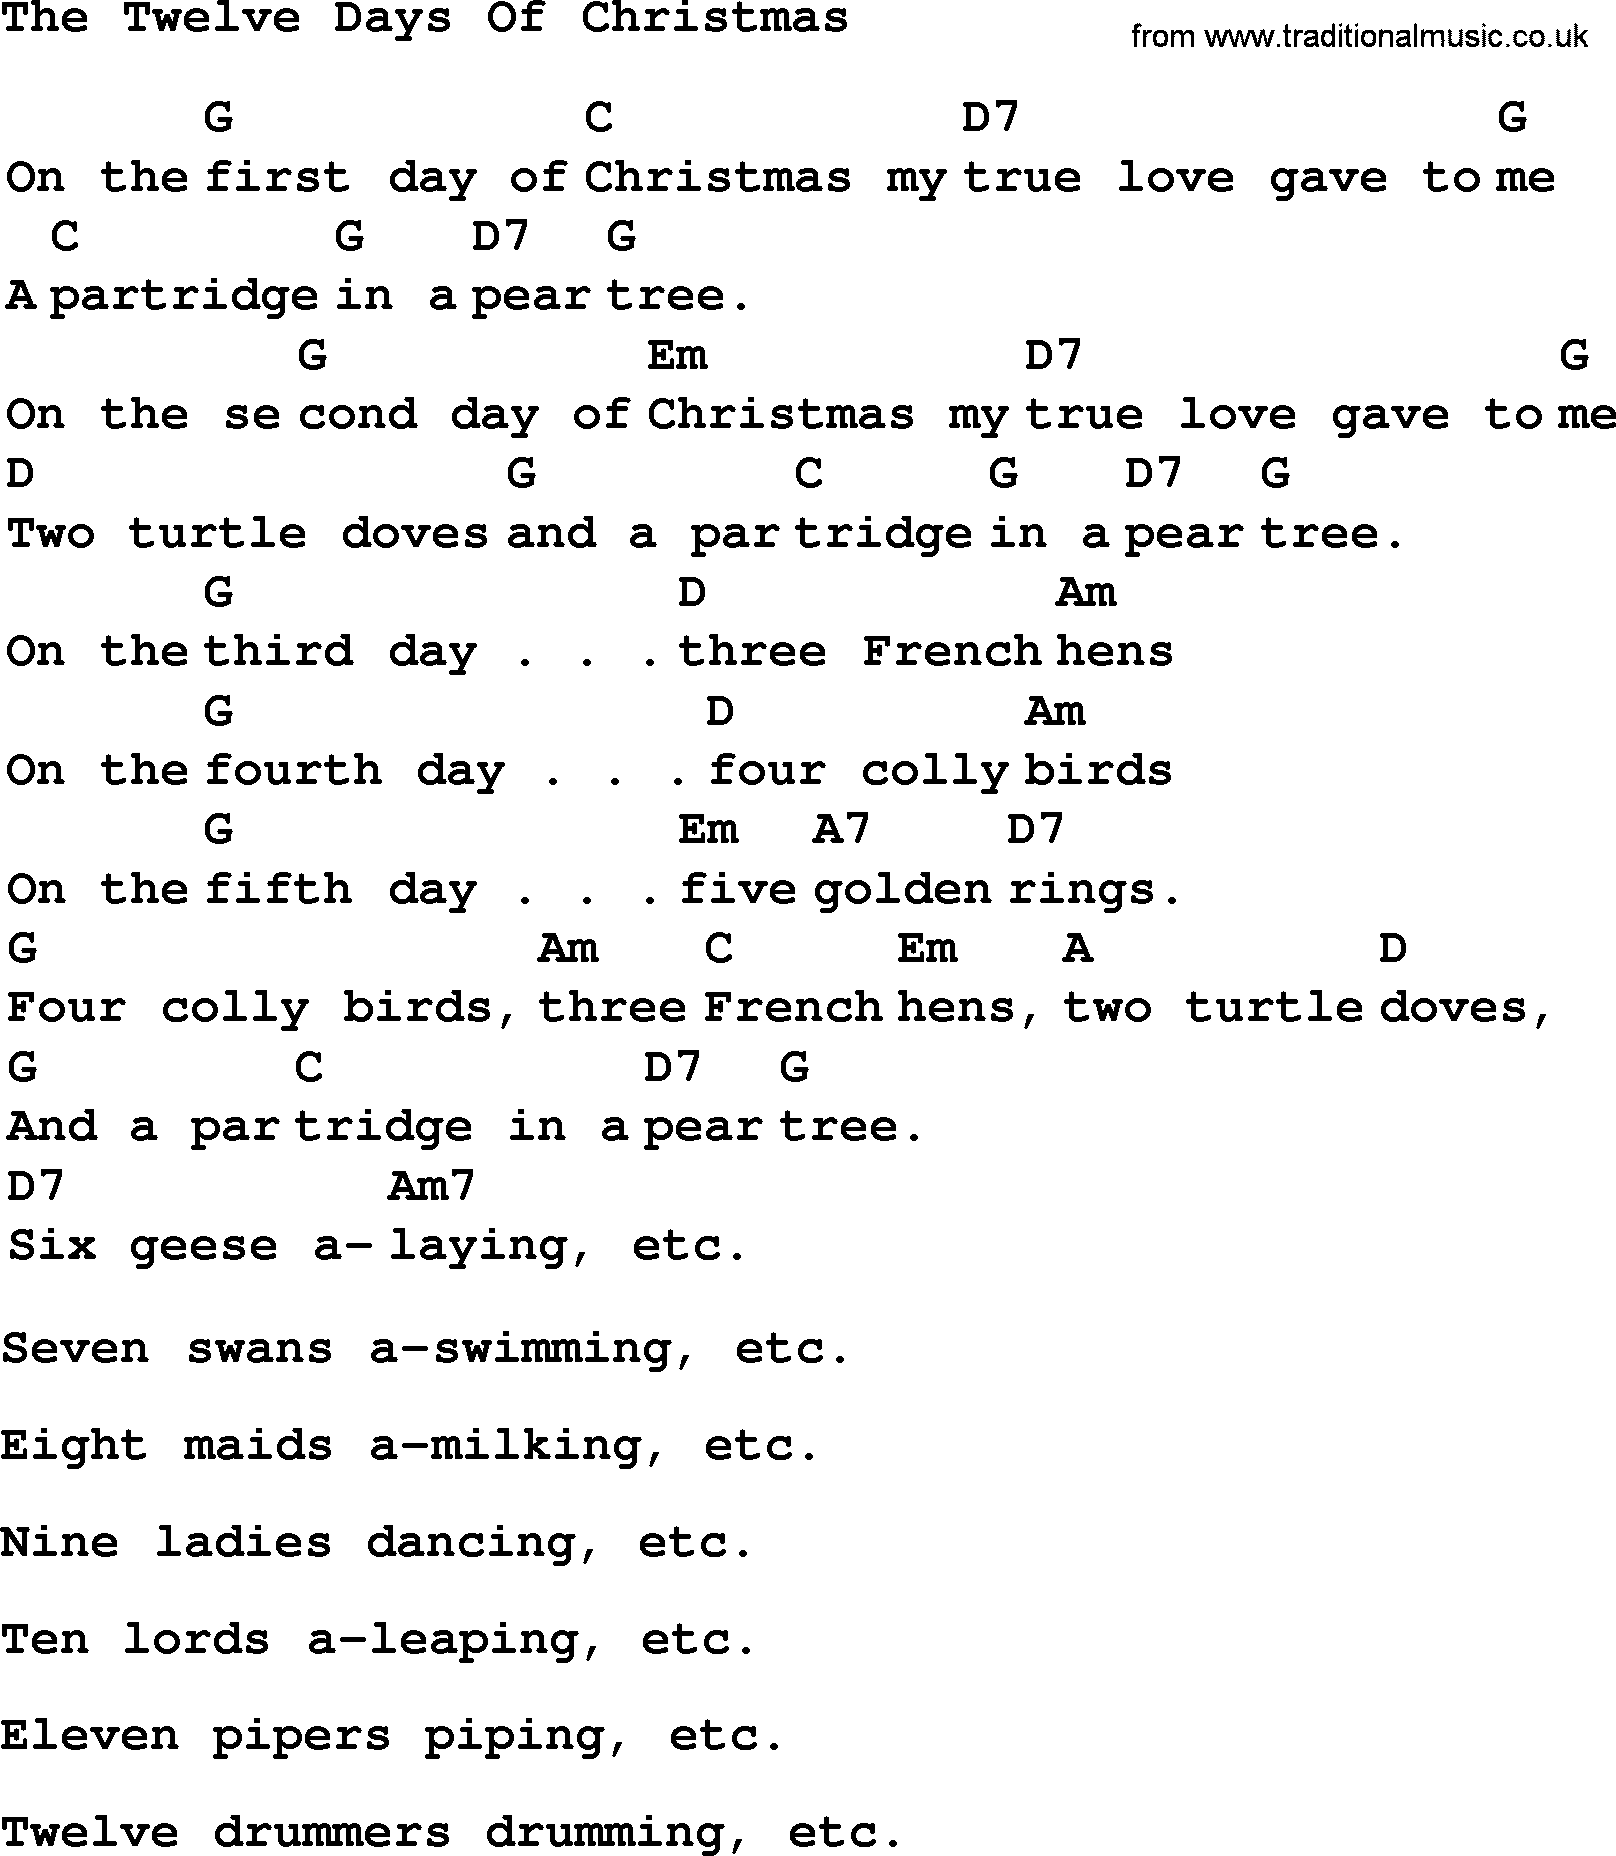 12 Days Of Christmas Lyrics.Top 1000 Folk And Old Time Songs Collection Twelve Days Of